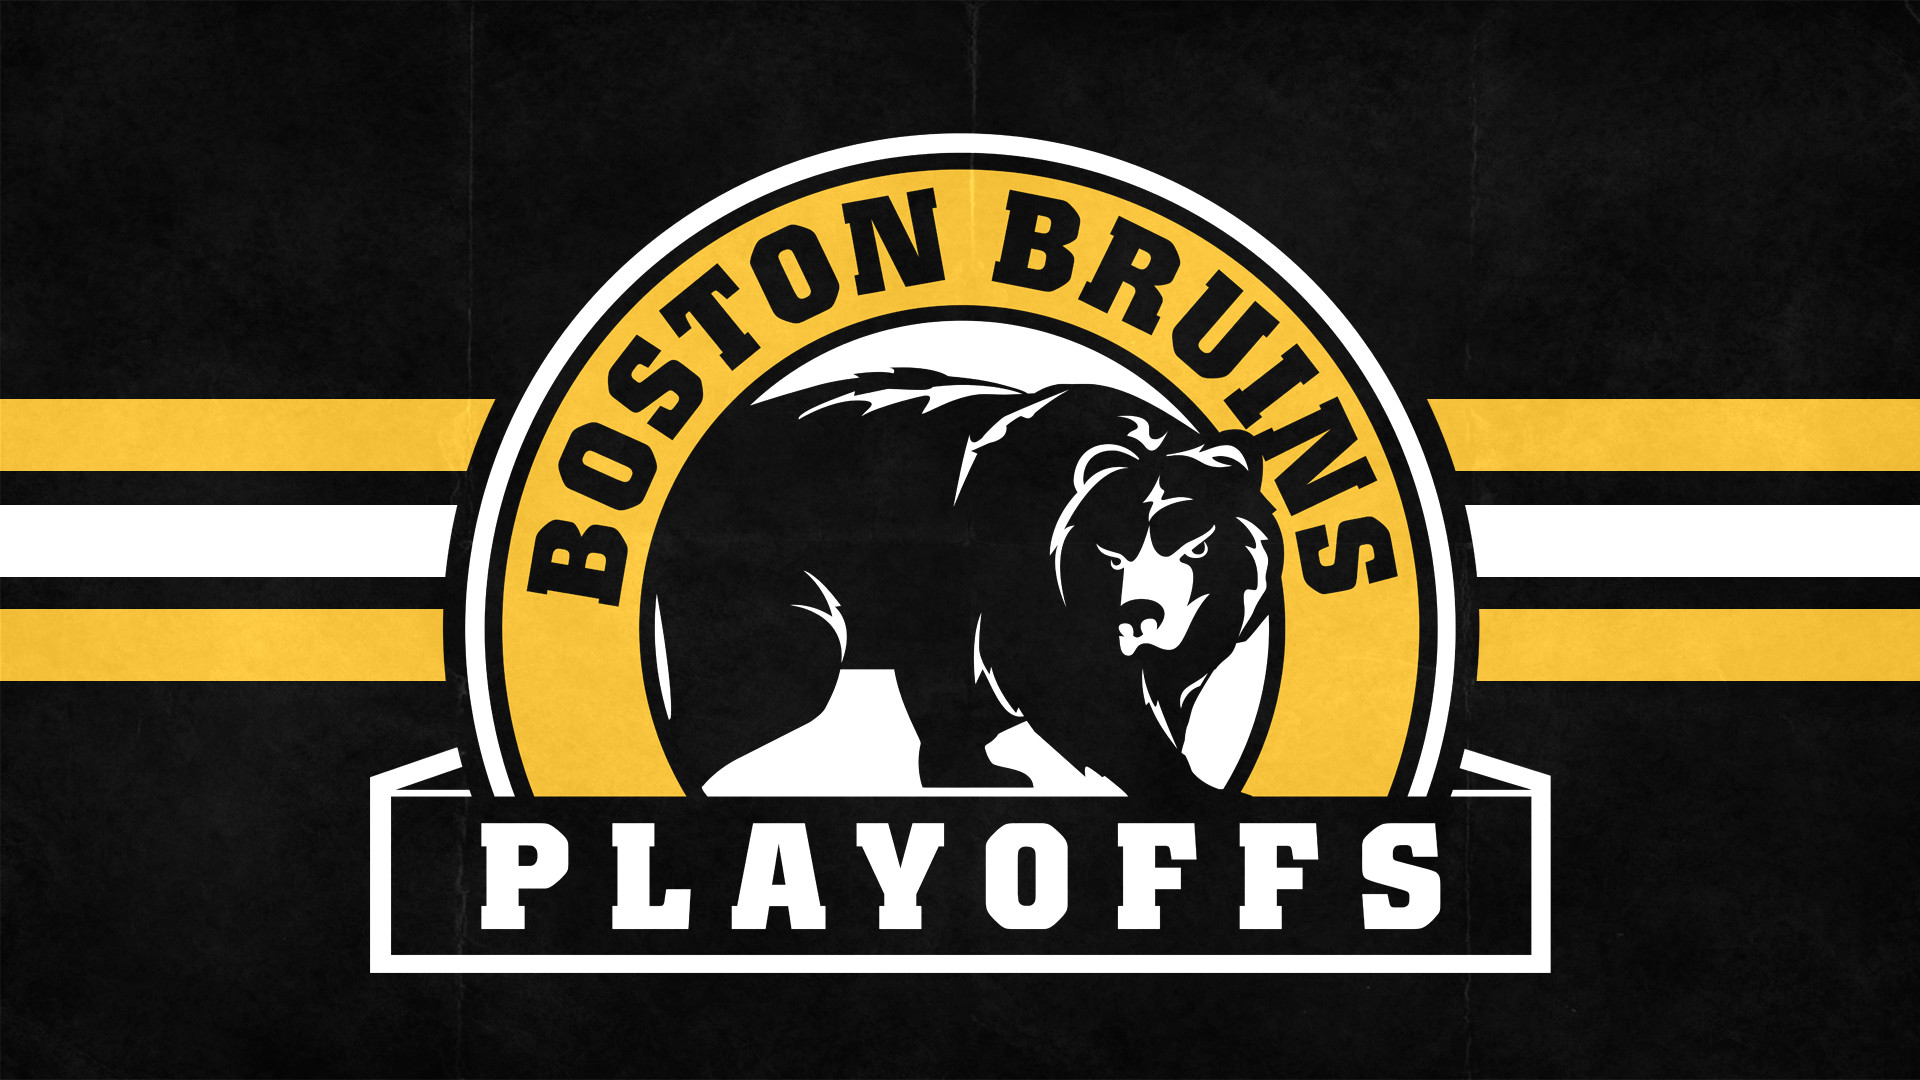 Res: 1920x1080, Boston Bruins Wallpapers 20367 HD Image  for Gadget